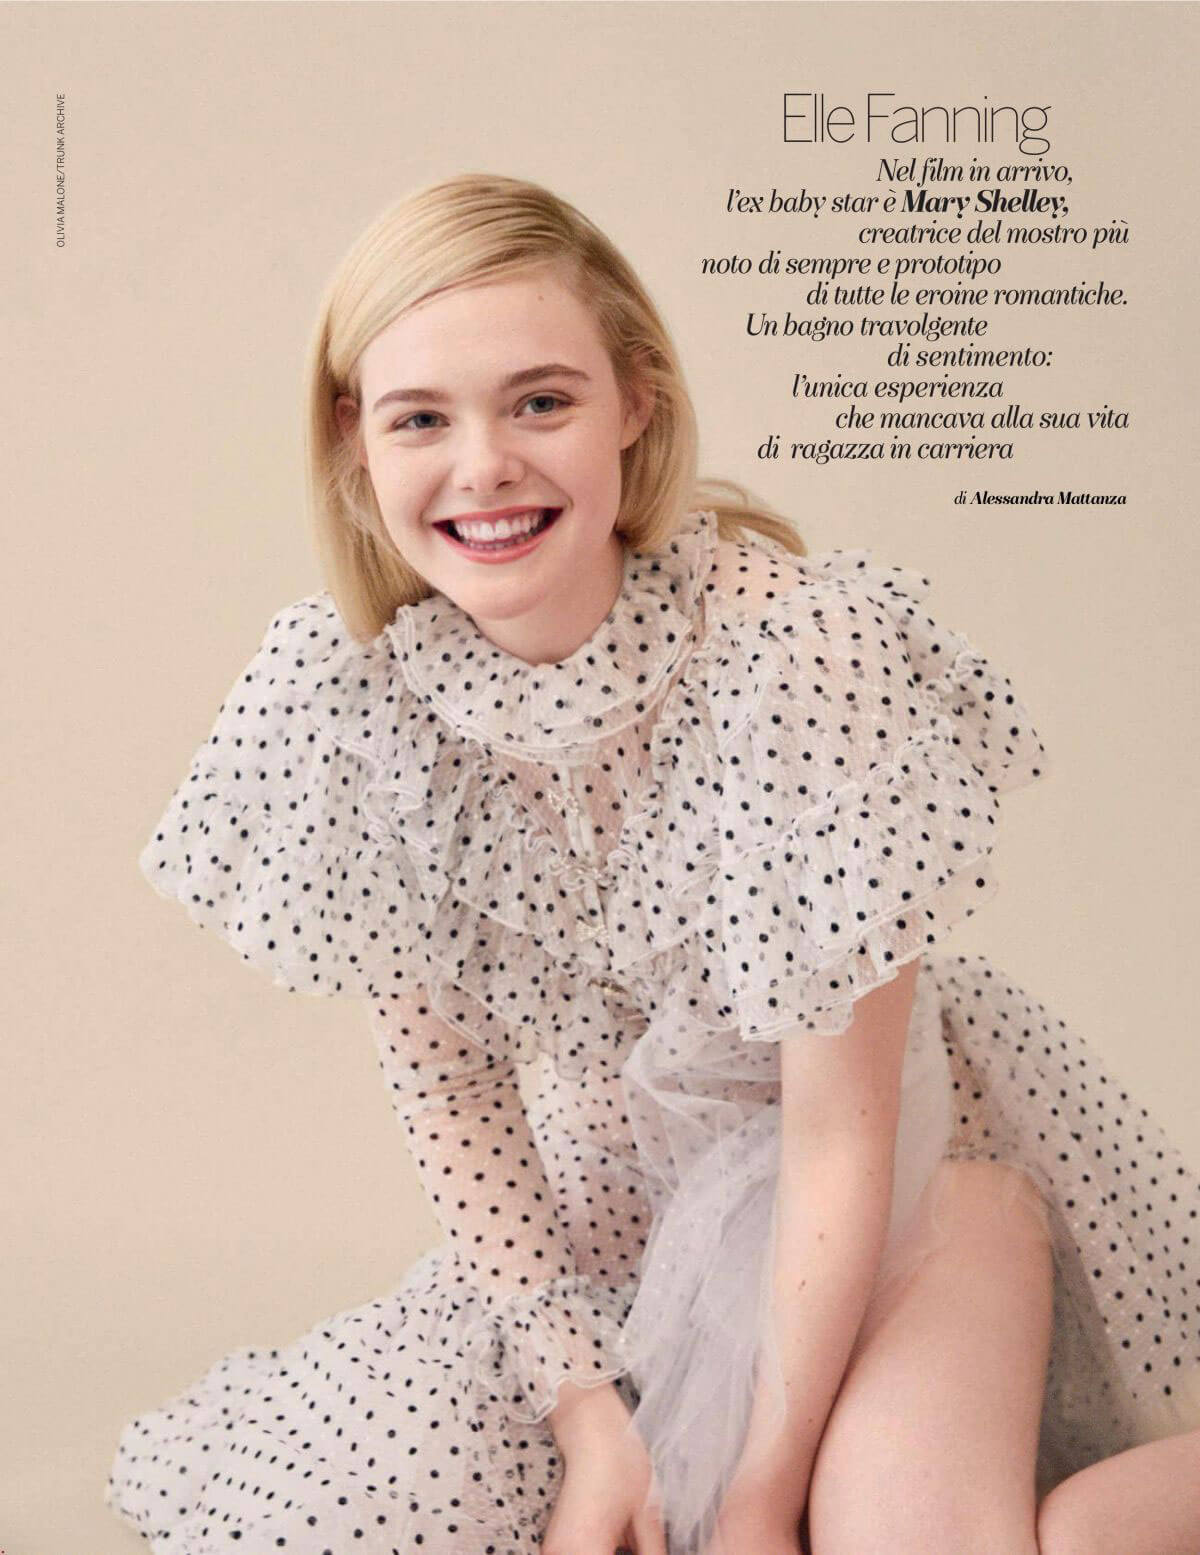 Elle Fanning in Gioia Magazine, August 2018 Issue 1